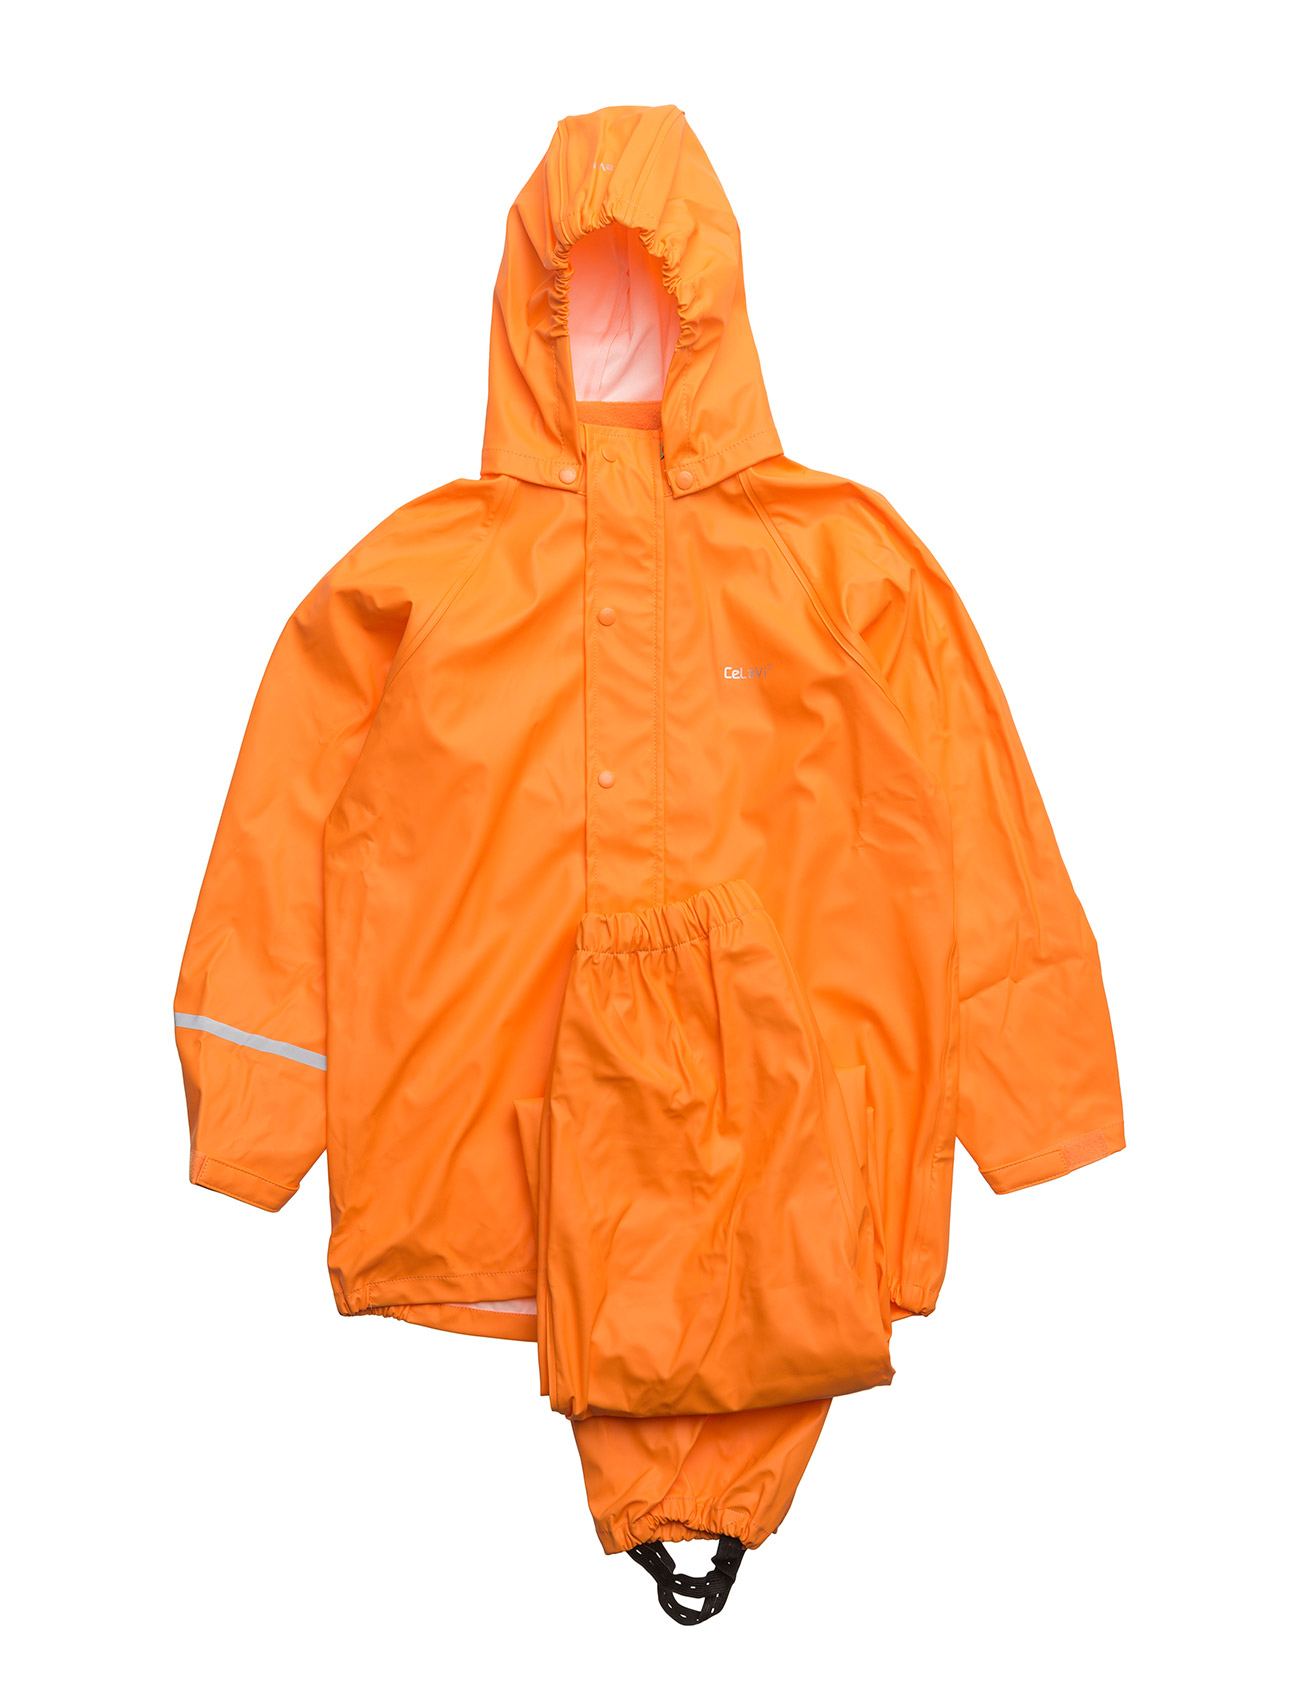 CeLaVi Basci rainwear set, solid